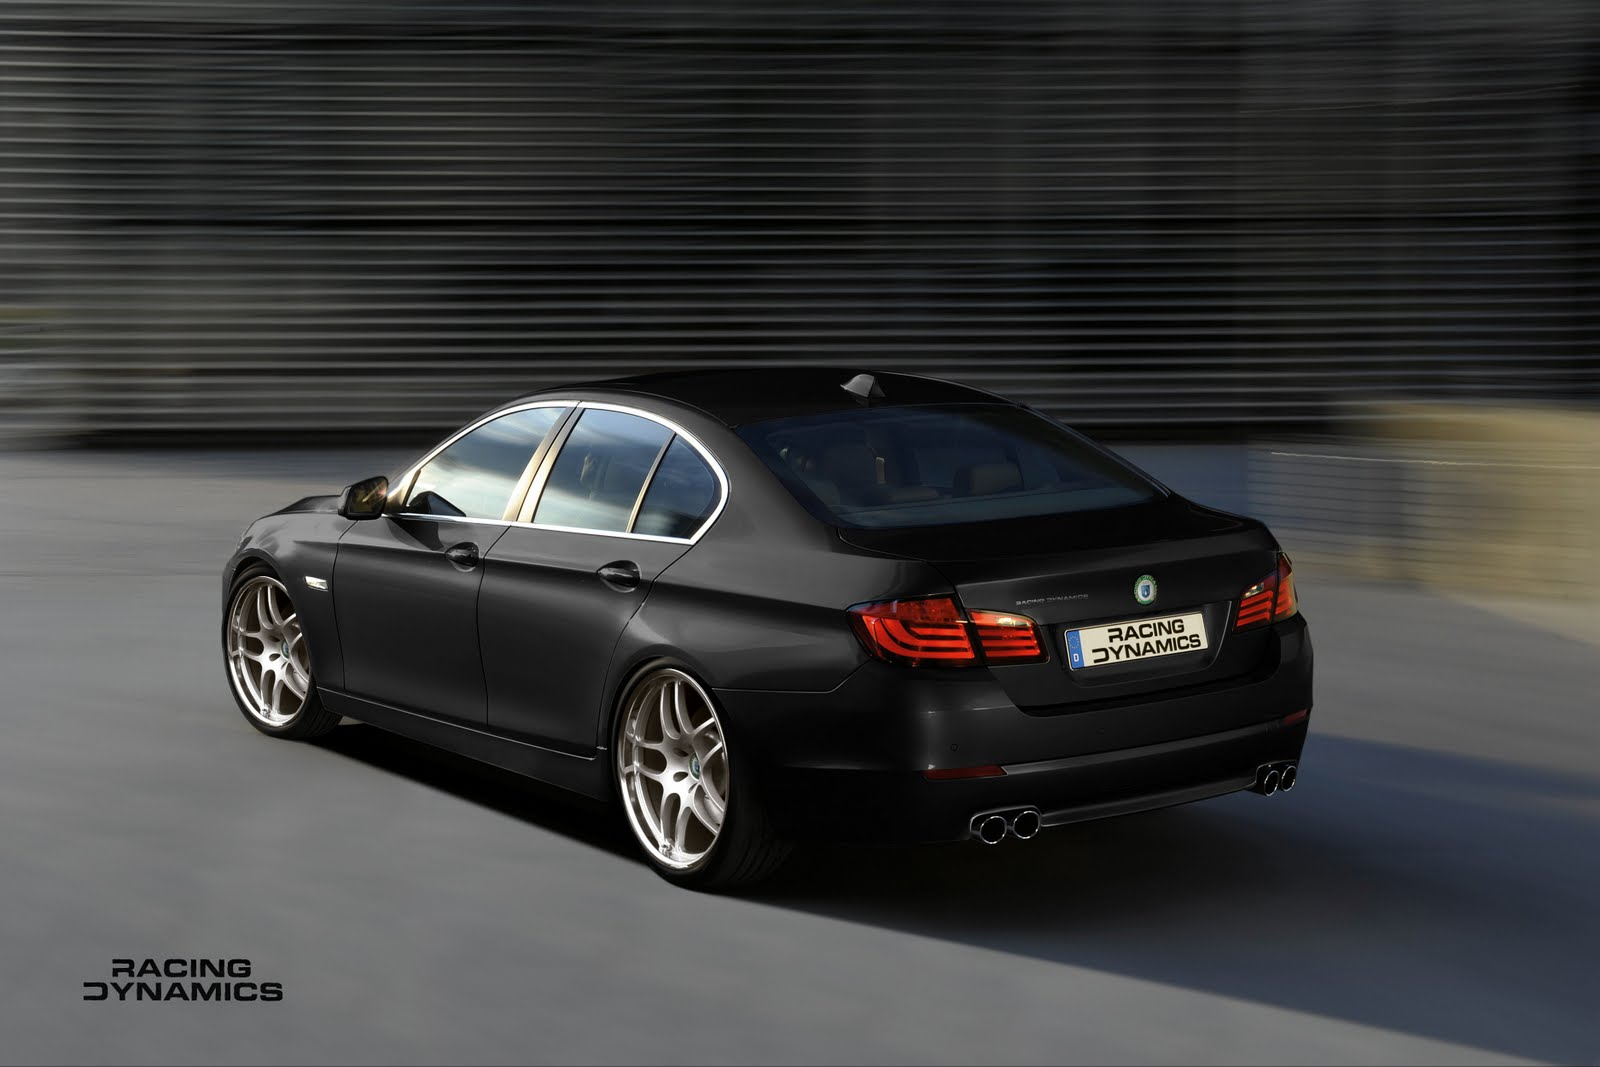 bmw 5 serie f10 alpina d5. Black Bedroom Furniture Sets. Home Design Ideas